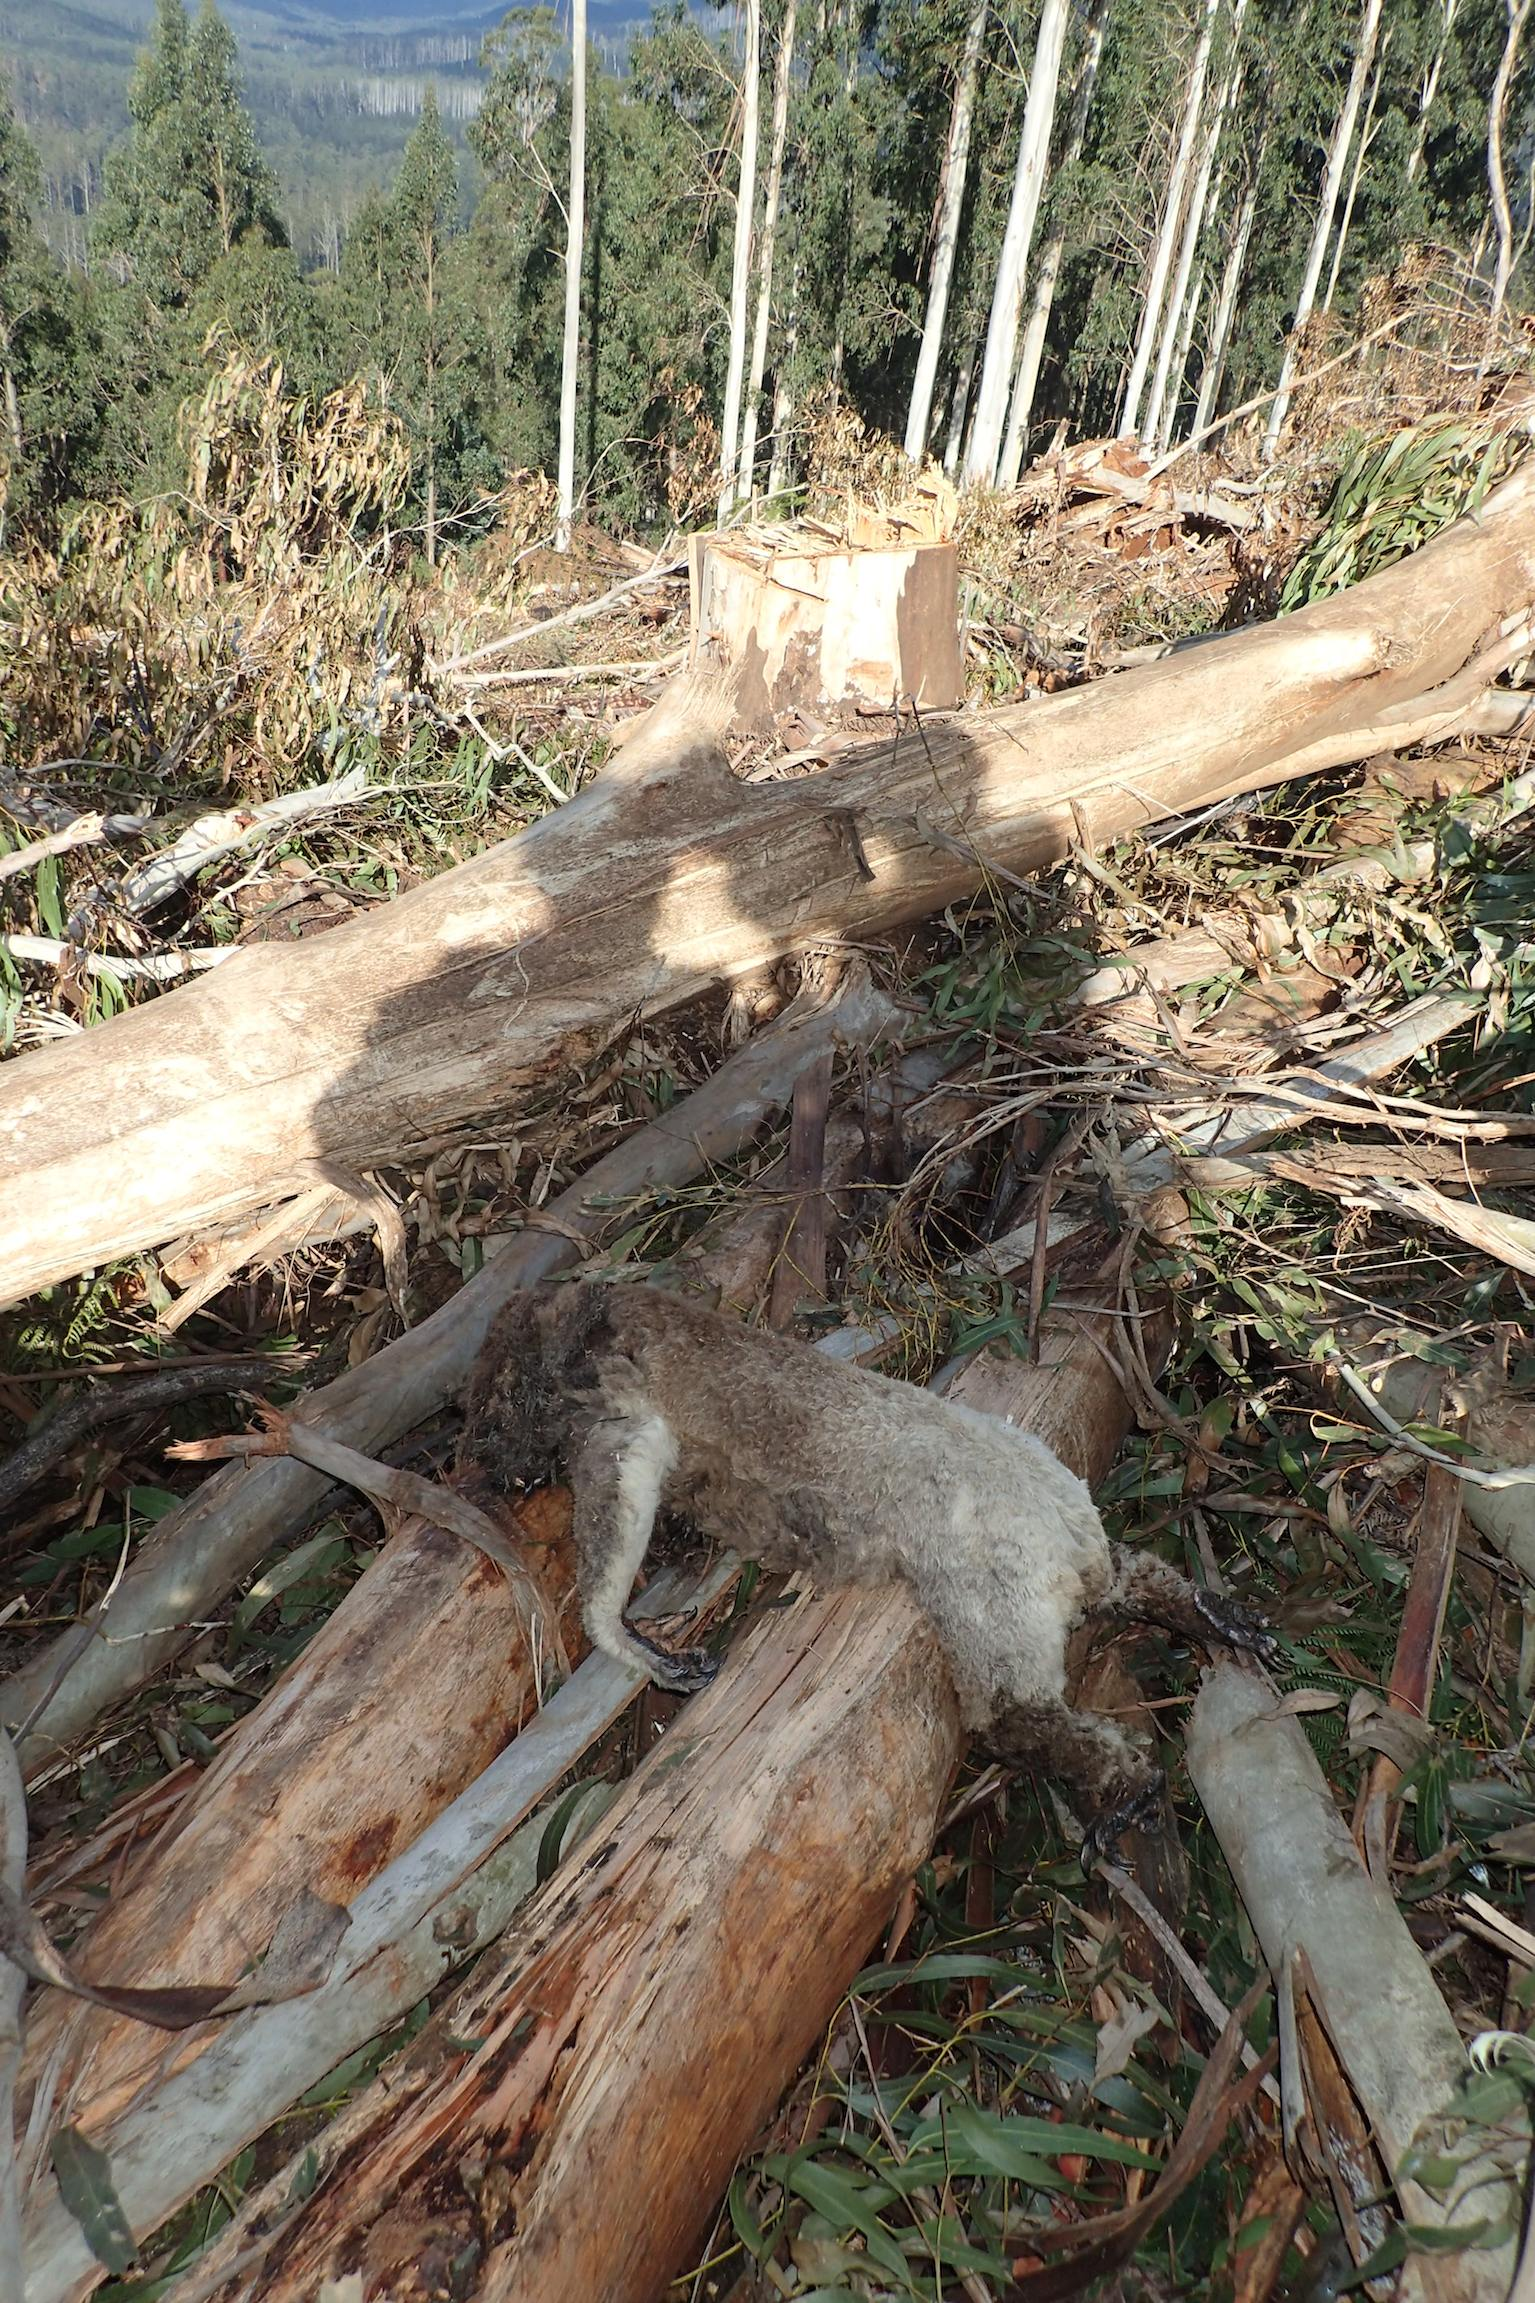 Logging in the area is reportedly ongoing. (Supplied)